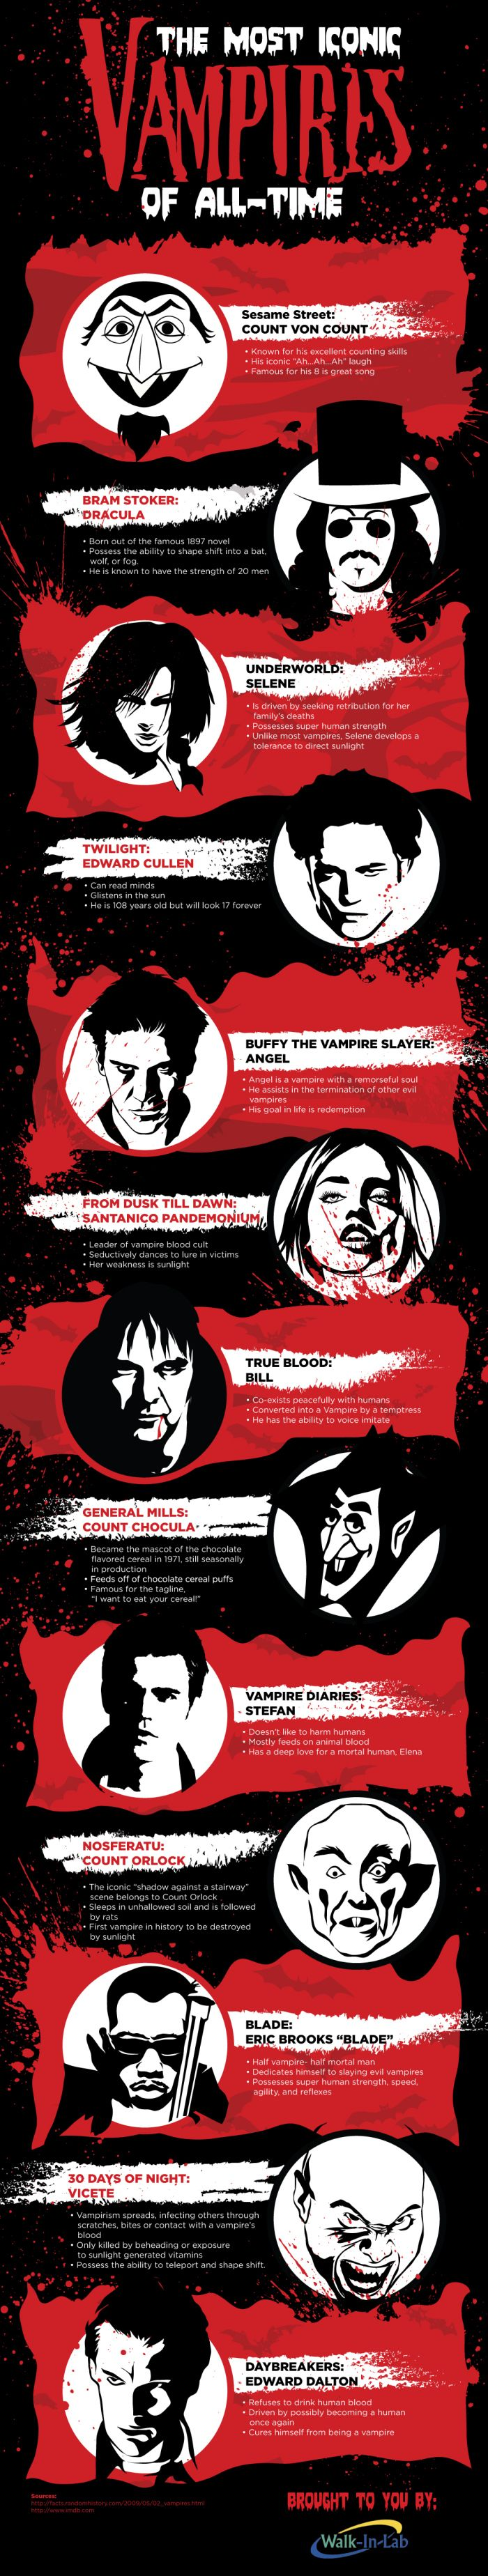 The Most Iconic Vampires of All-Time [by Walk-In Lab -- via #tipsographic]. More at tipsographic.com